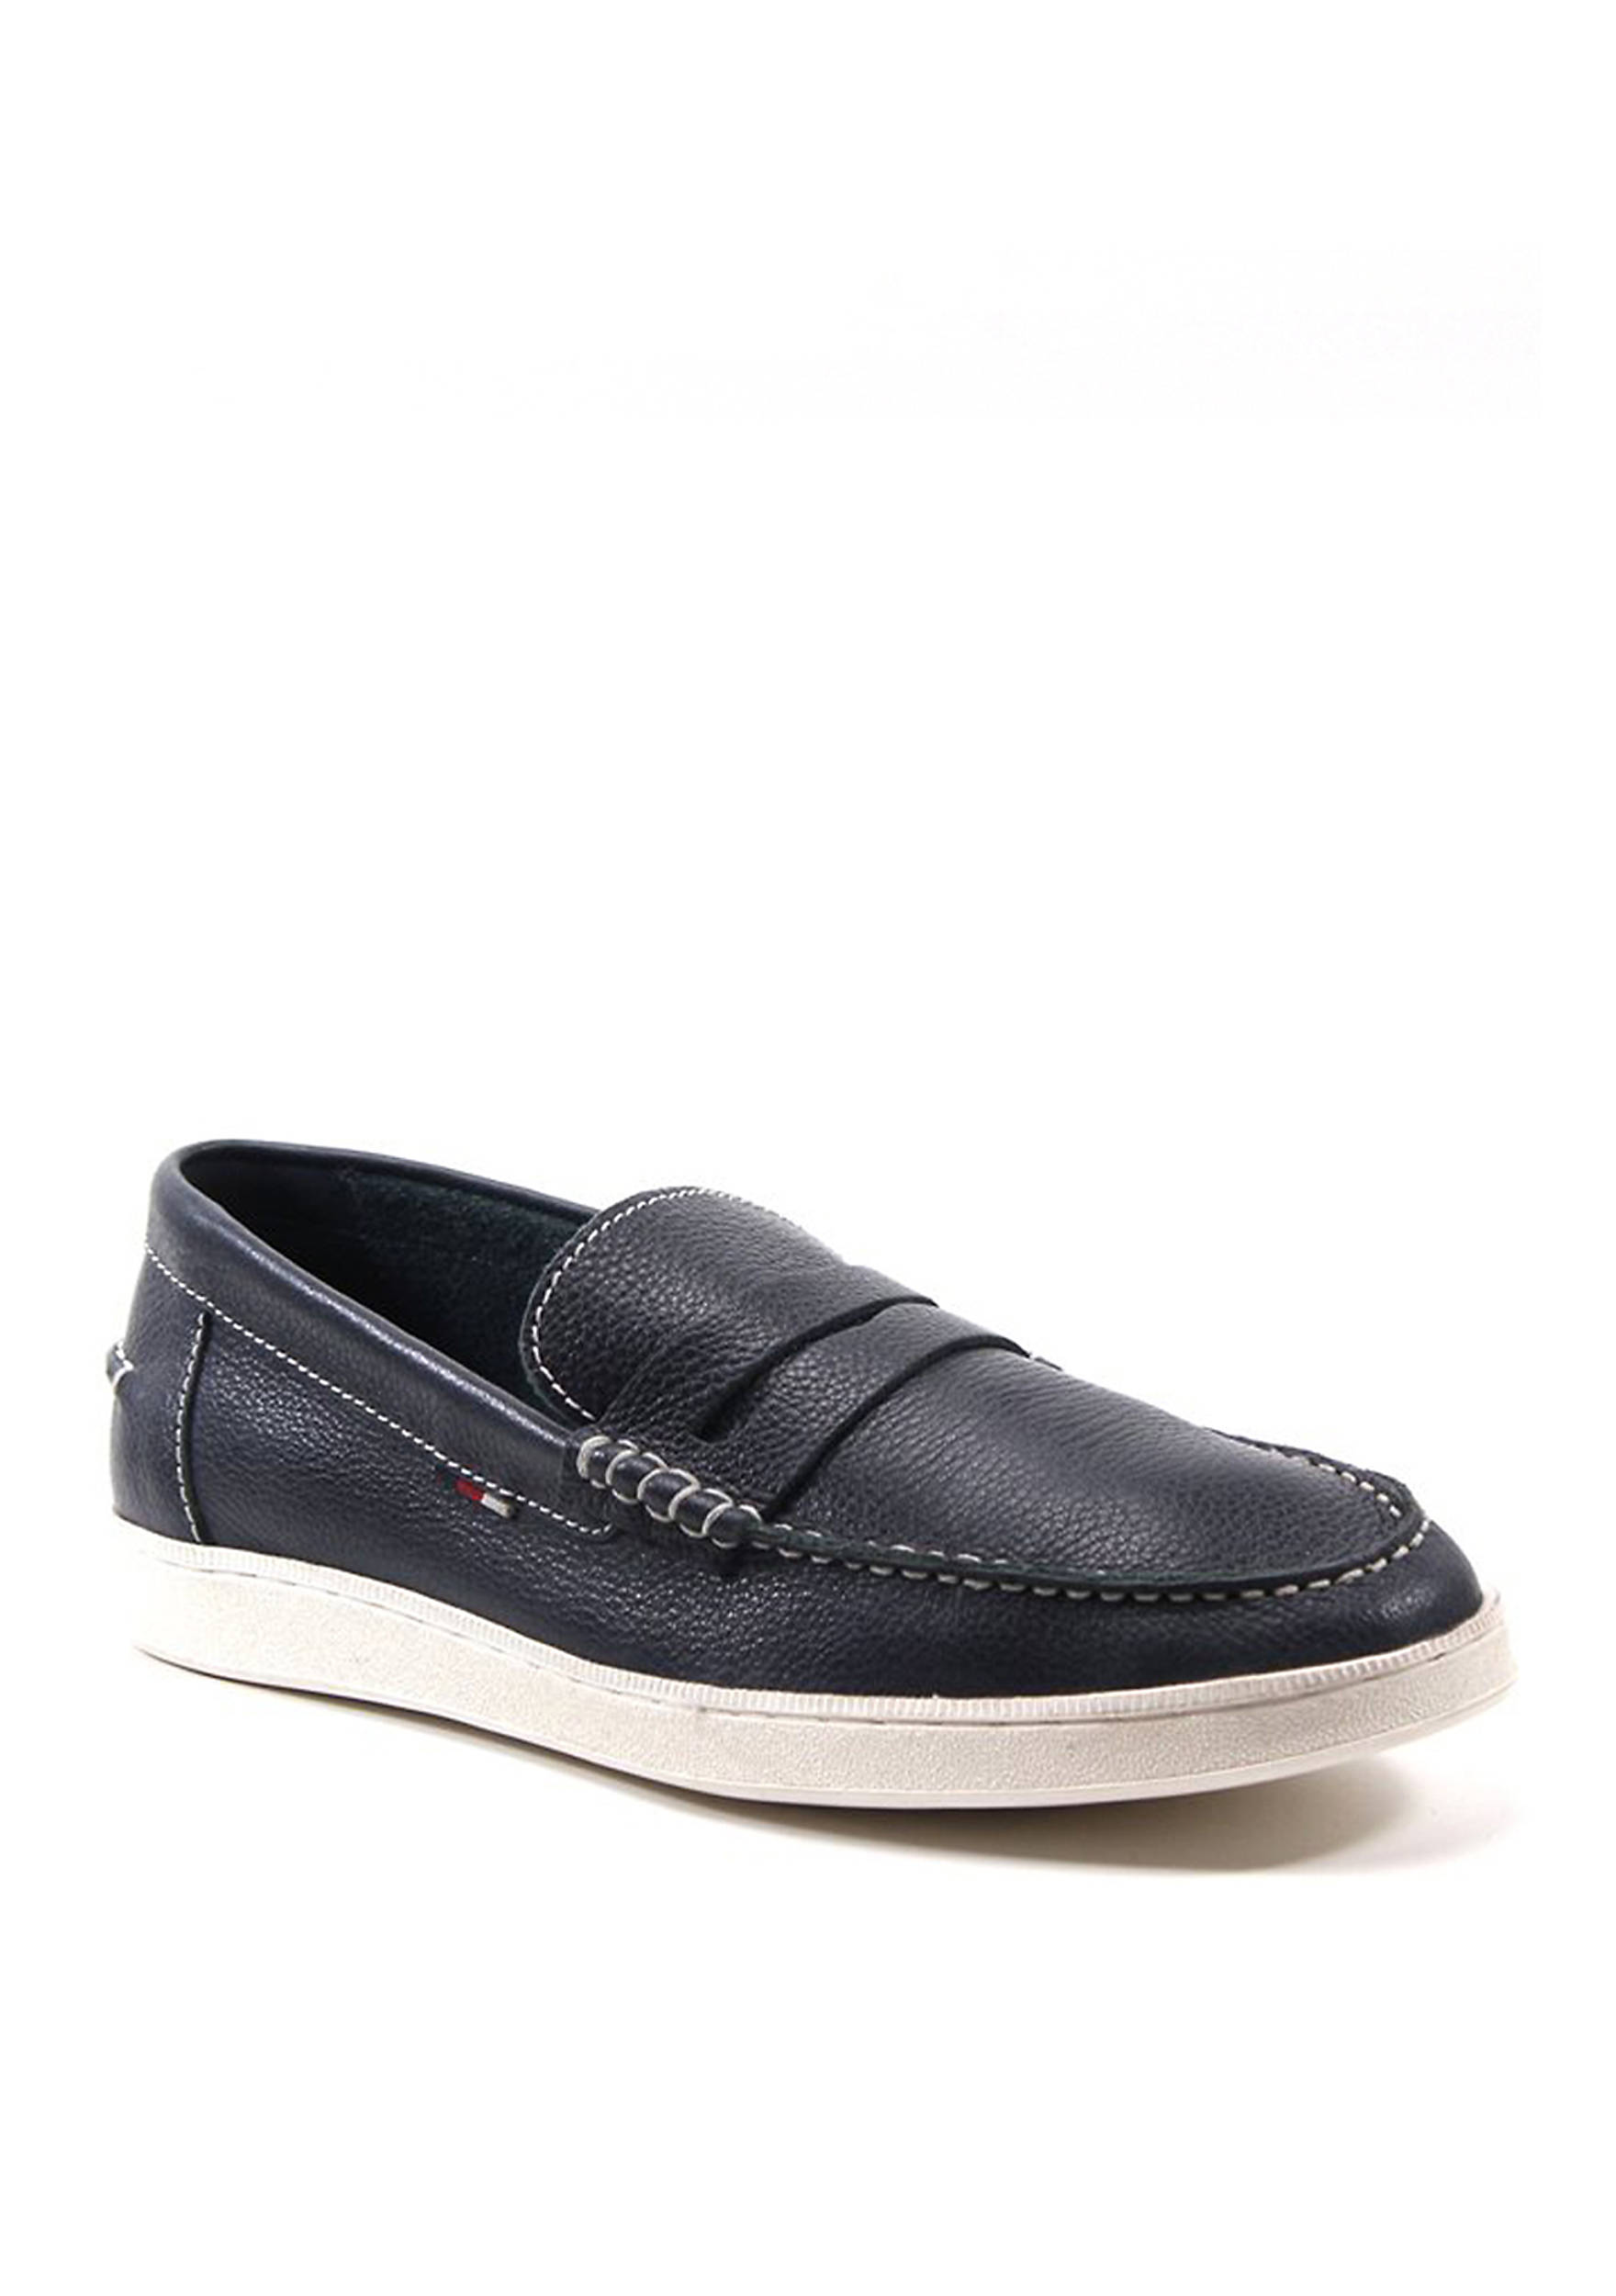 Testosterone Jim Nee Shoe. 3900312T92001. Images